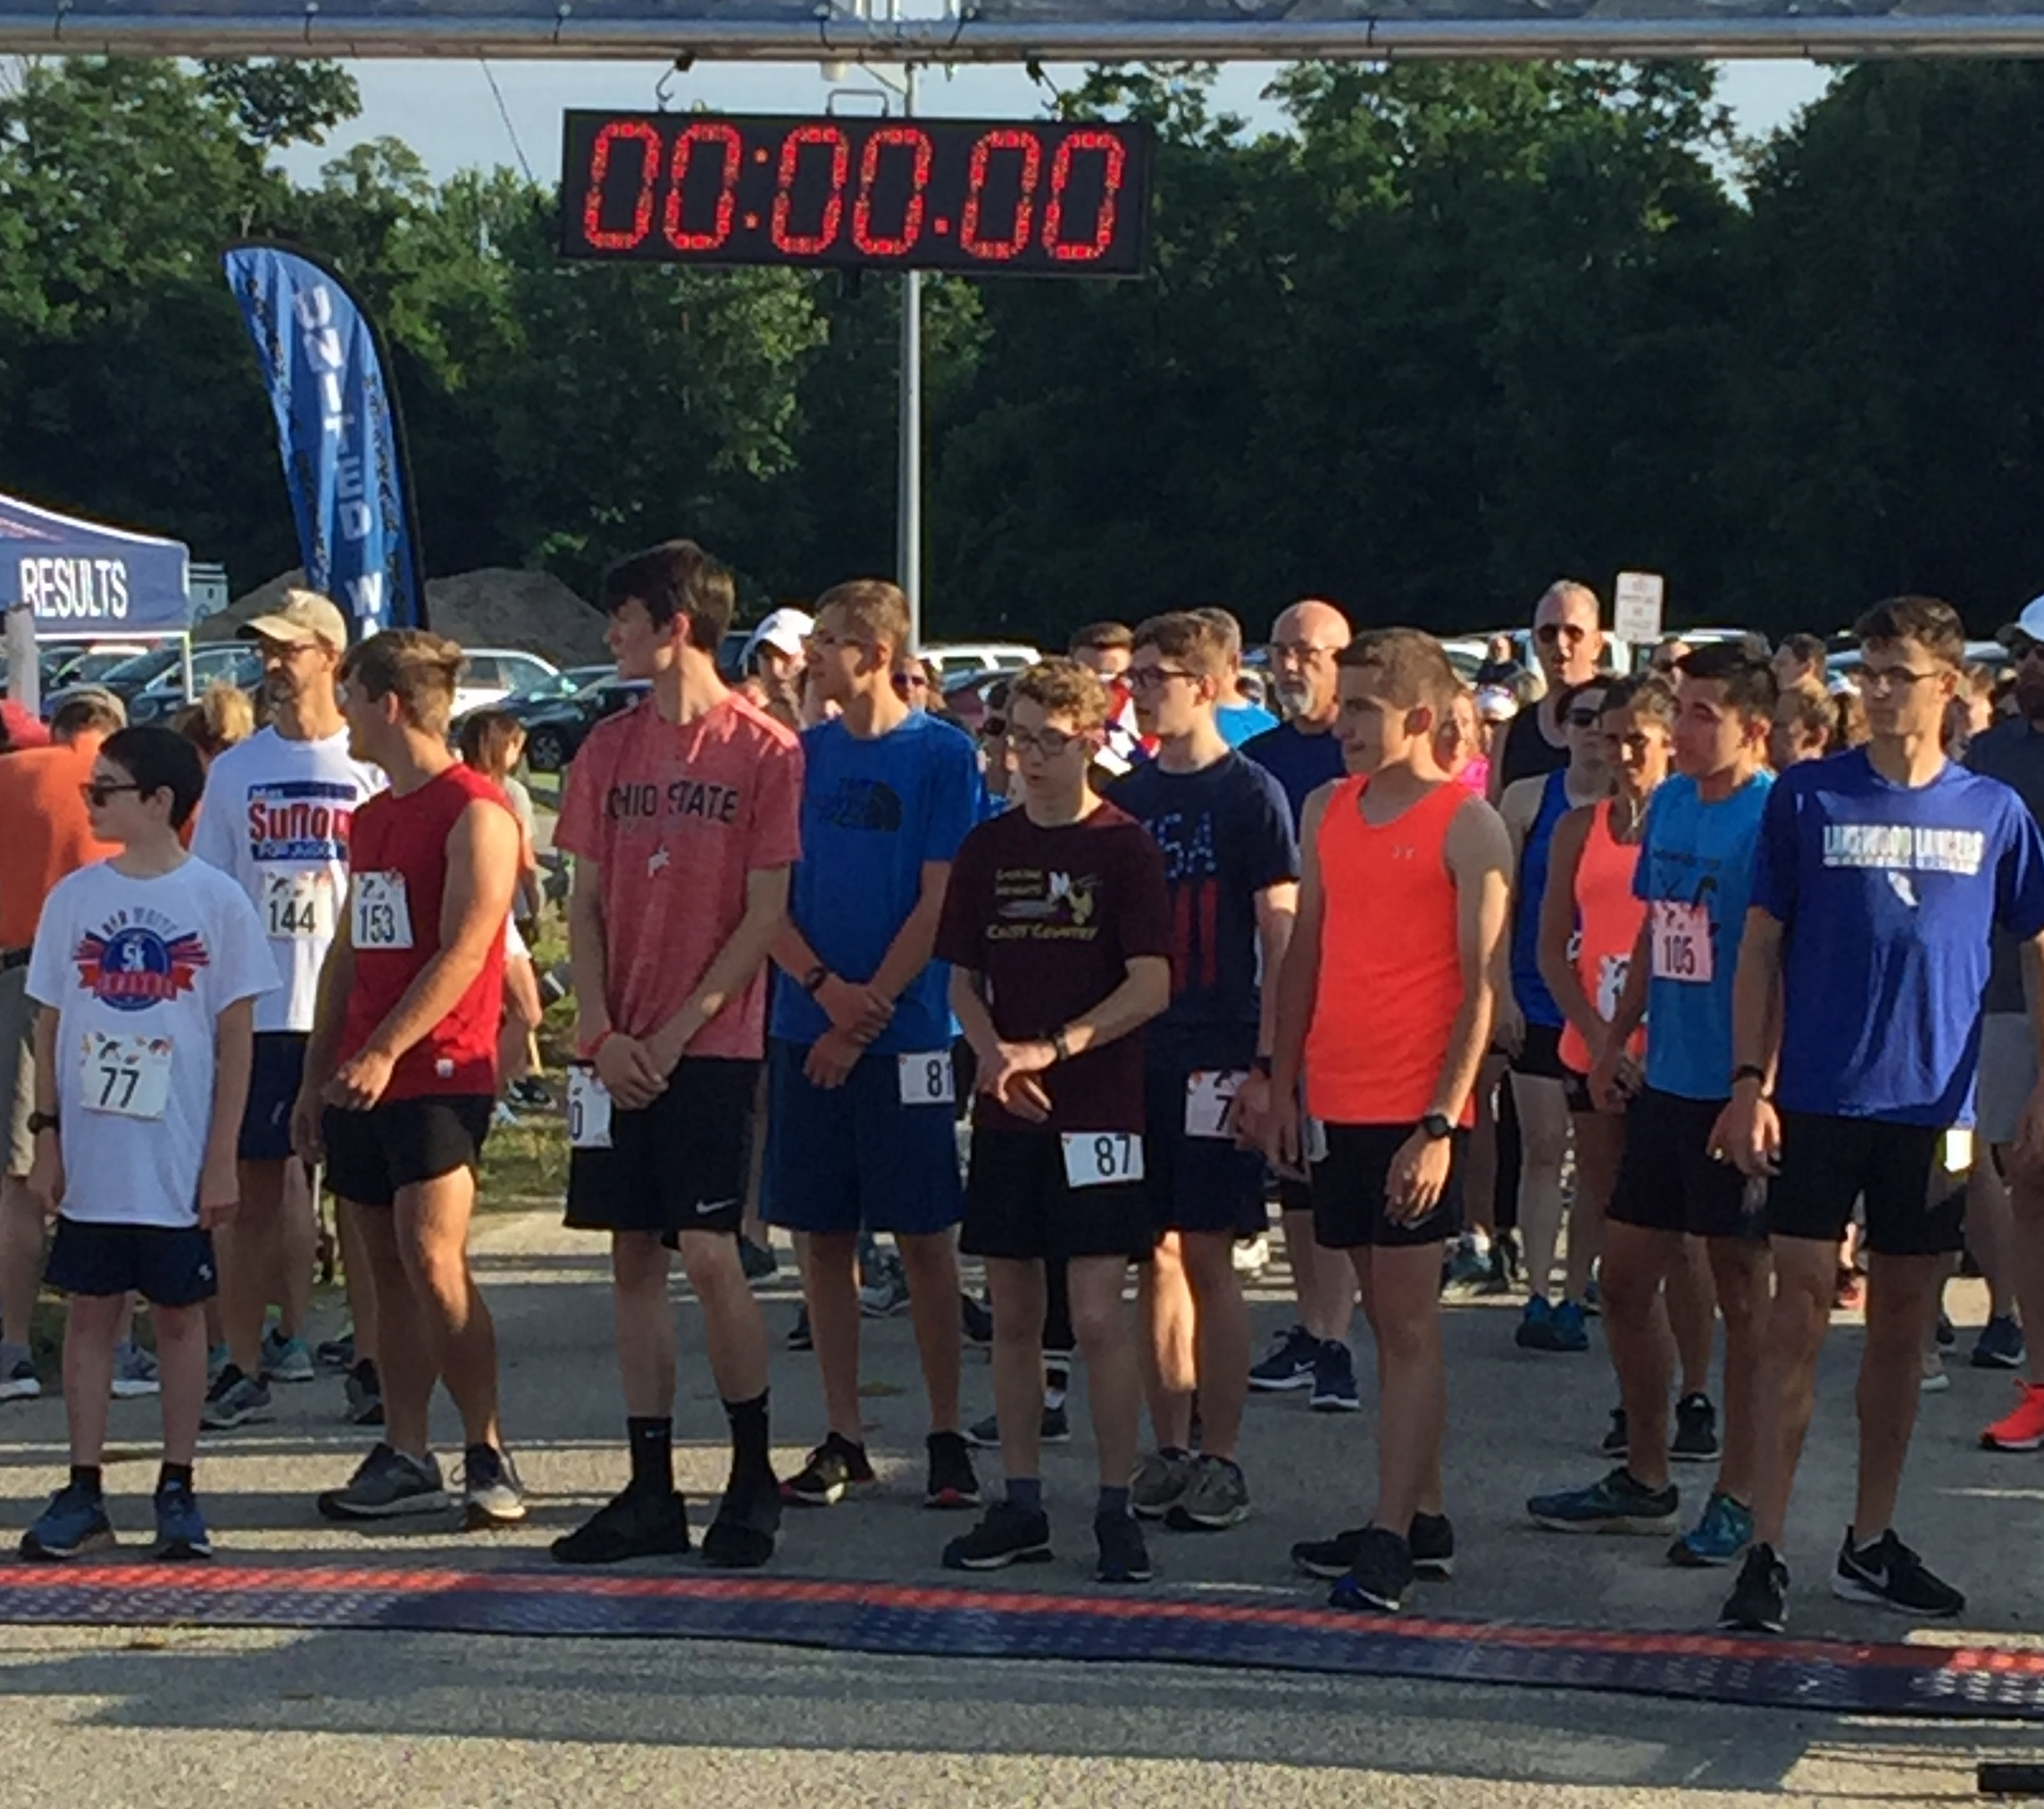 Chip Timed 5k Race Start - Ohio Race Timing & Event Management